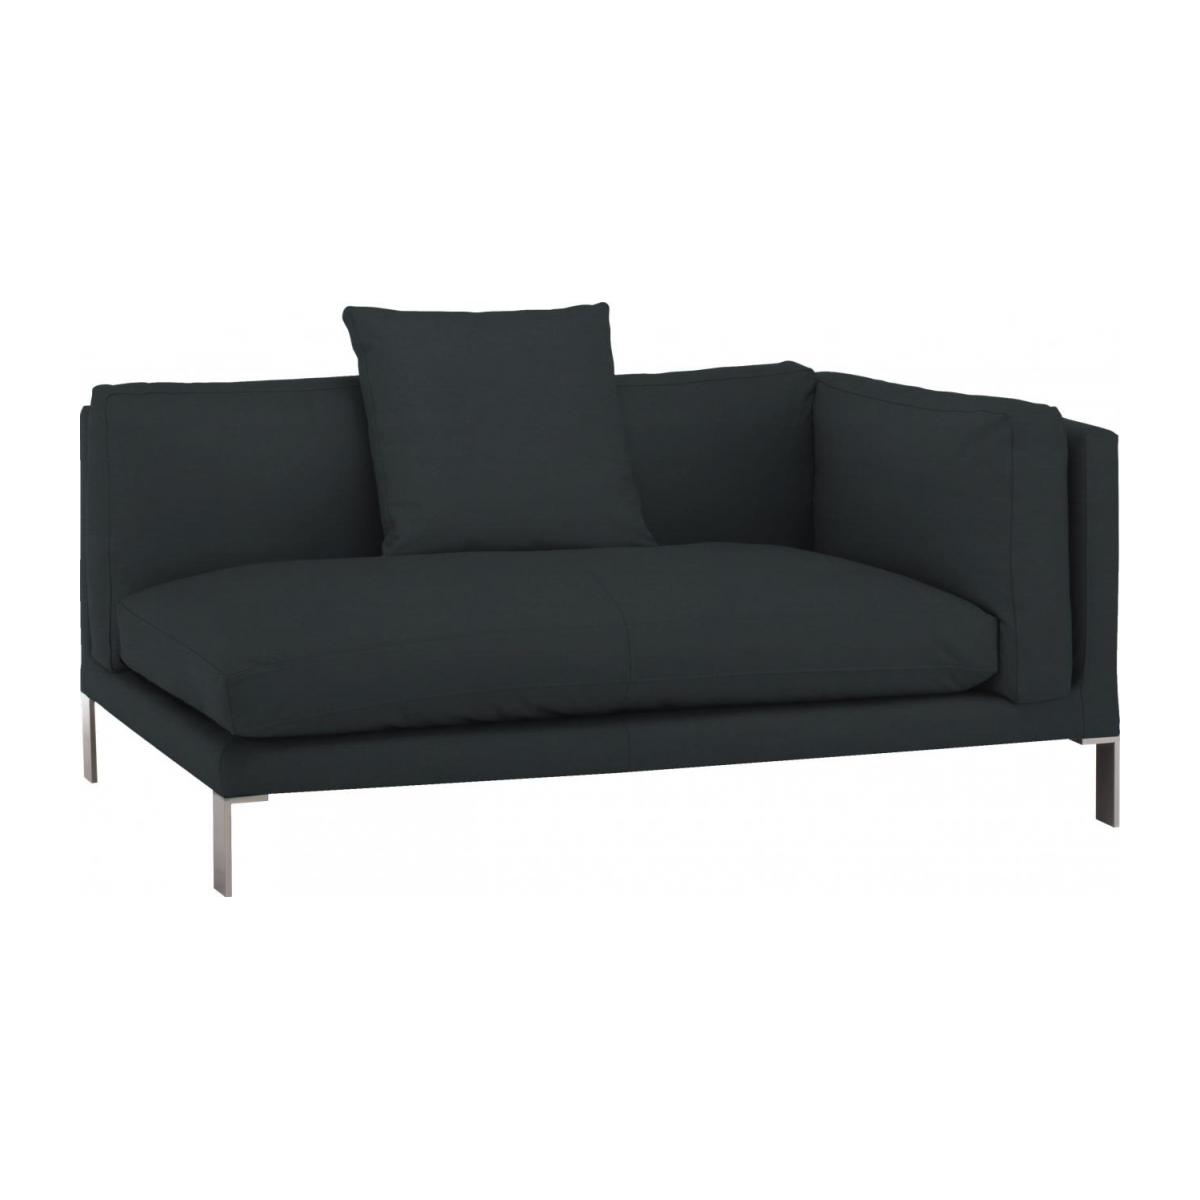 Leather riight-arm 2 seater sofa n°1